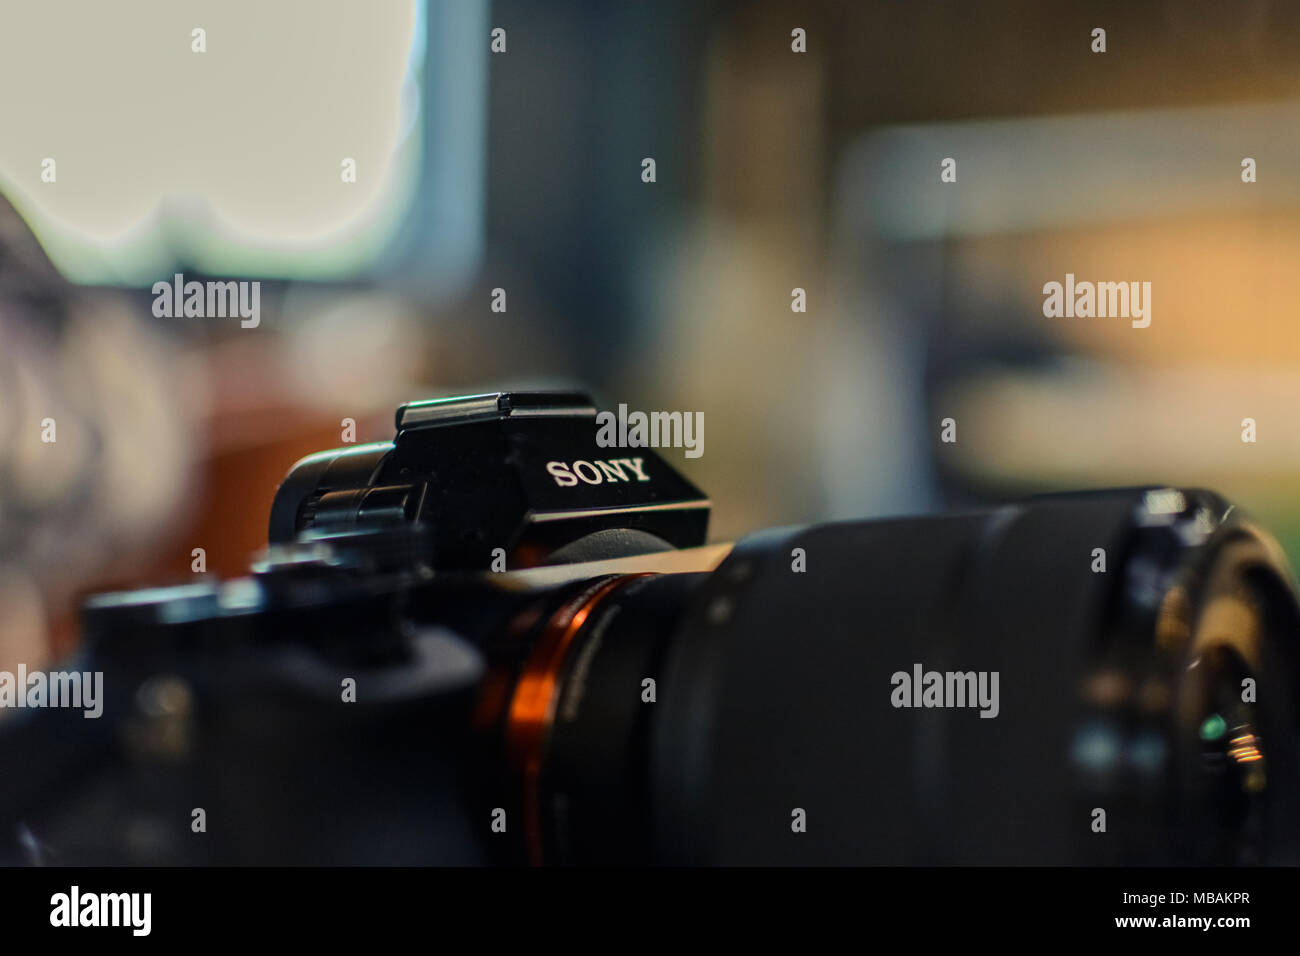 VARNA, BULGARIA,February 24, 2017: Abstract Close-Up of The Sony A7 against blury background. - Stock Image